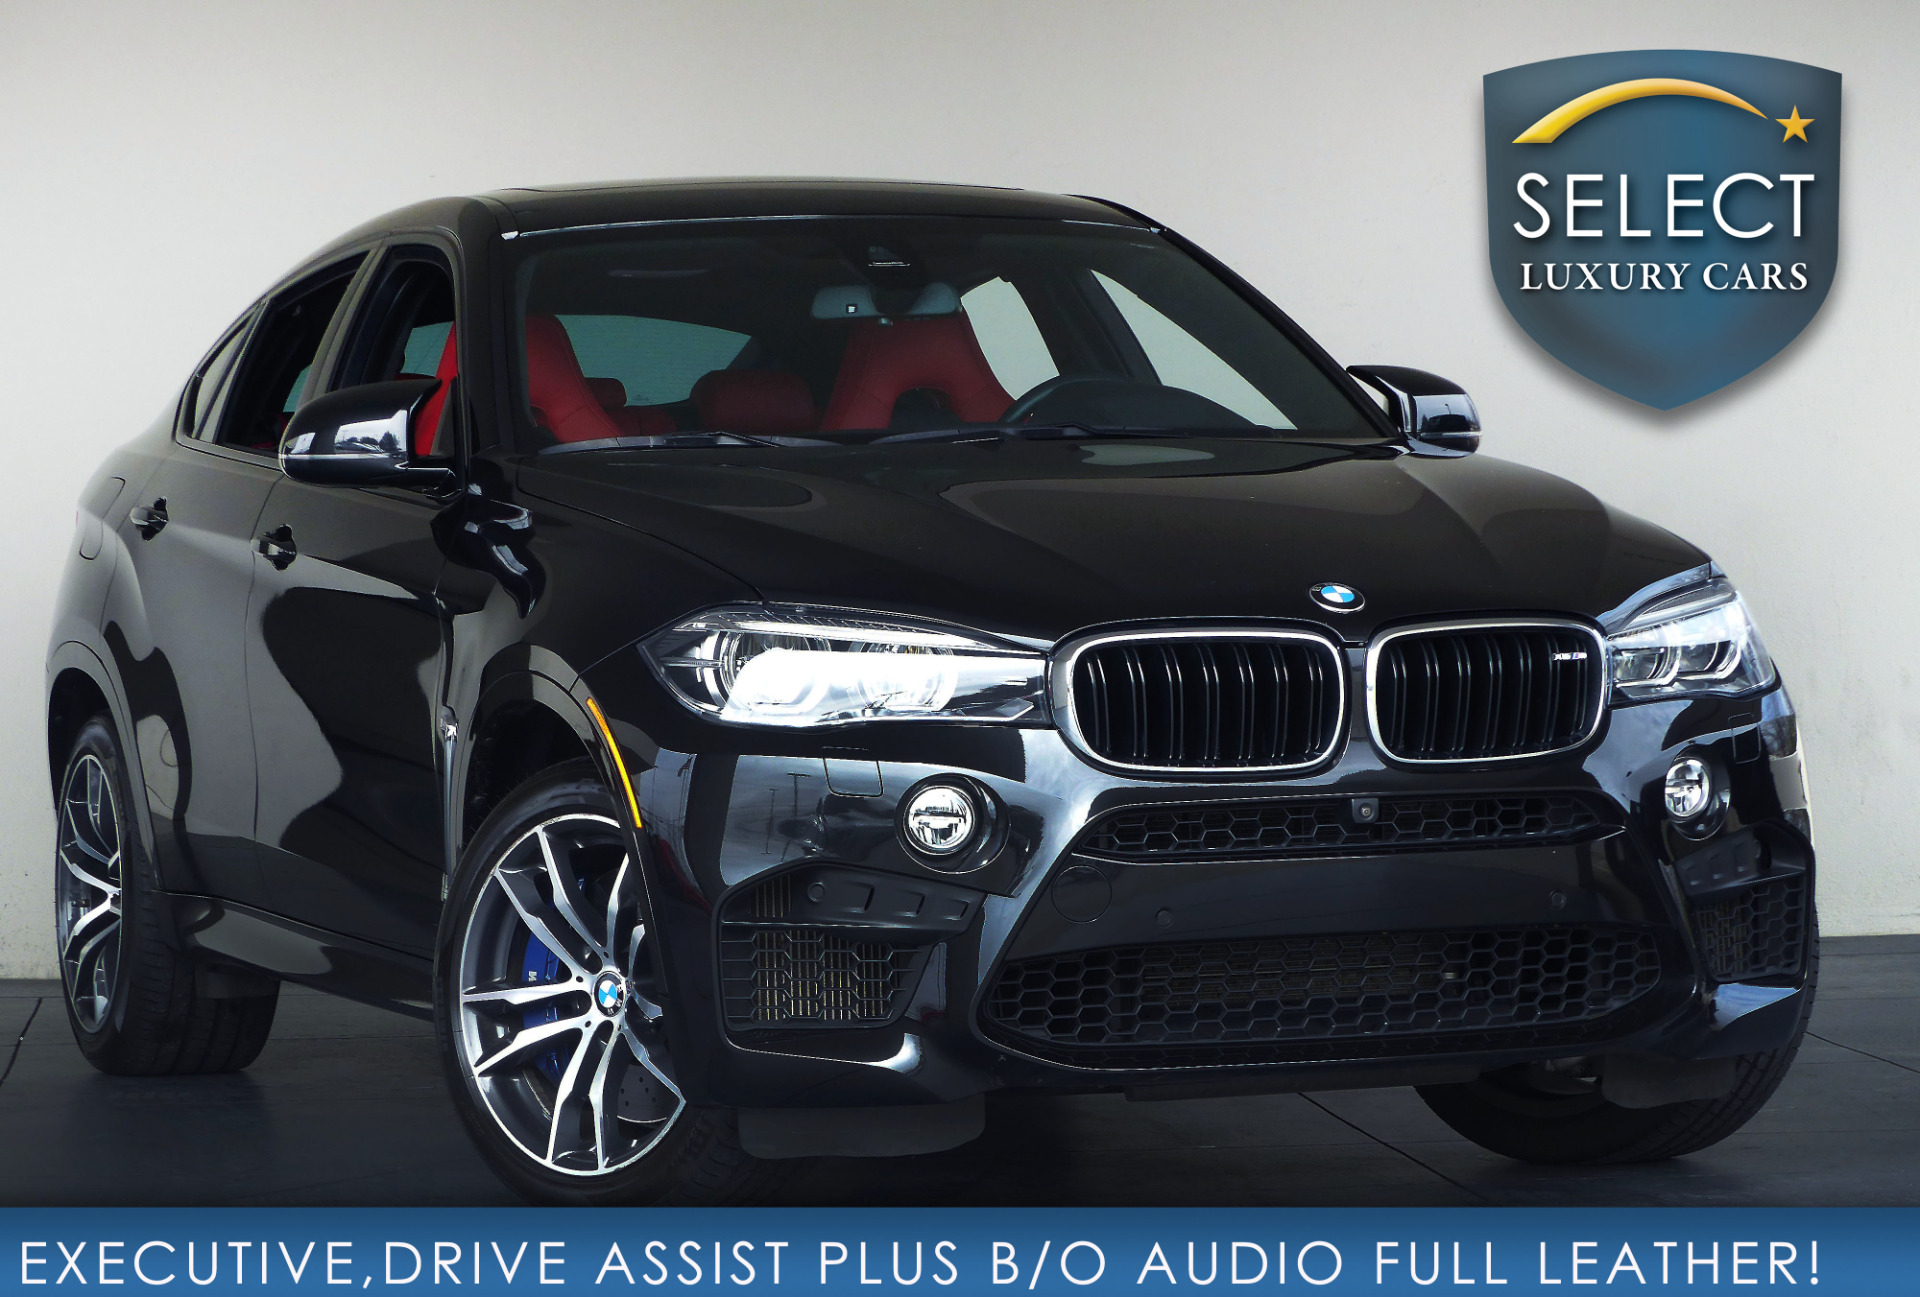 used 2017 bmw x6 m marietta ga. Black Bedroom Furniture Sets. Home Design Ideas